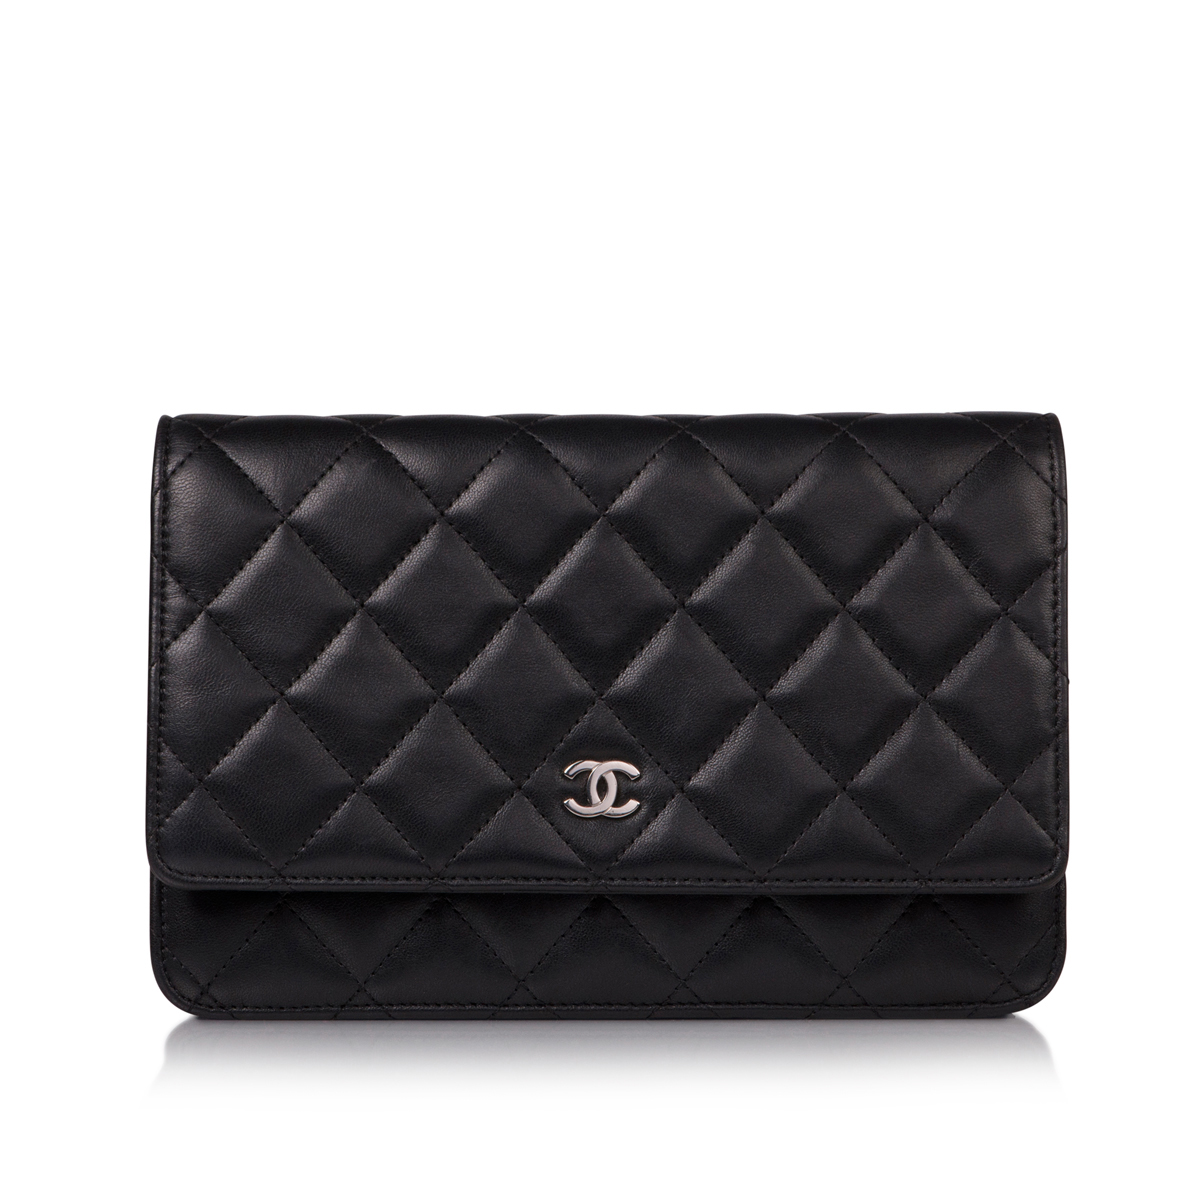 6bda85df1be3 Chanel WoC Wallet - Seasons Vintage